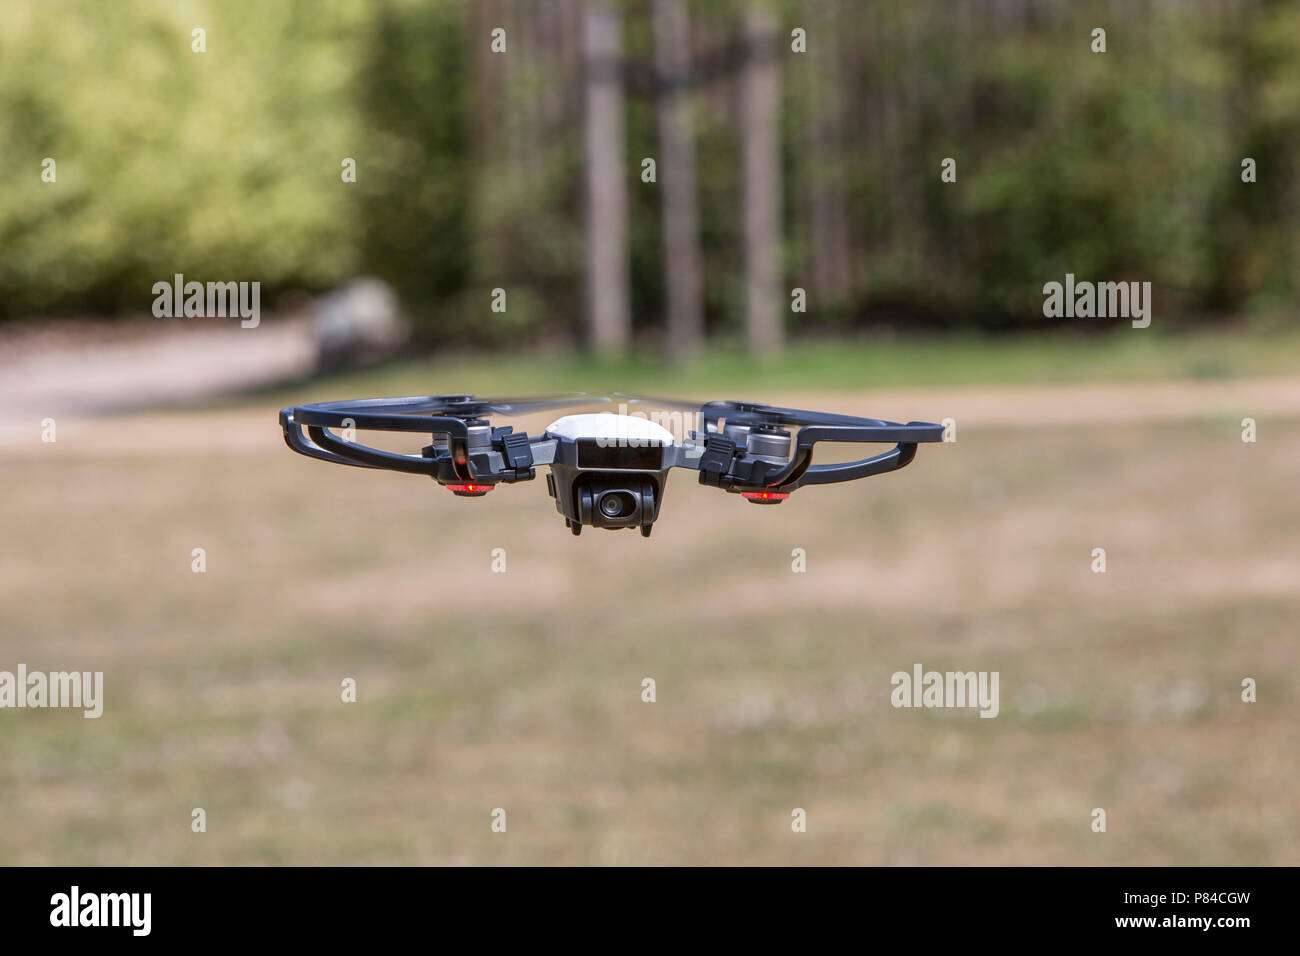 A camera carrying drone flying at low level - Stock Image